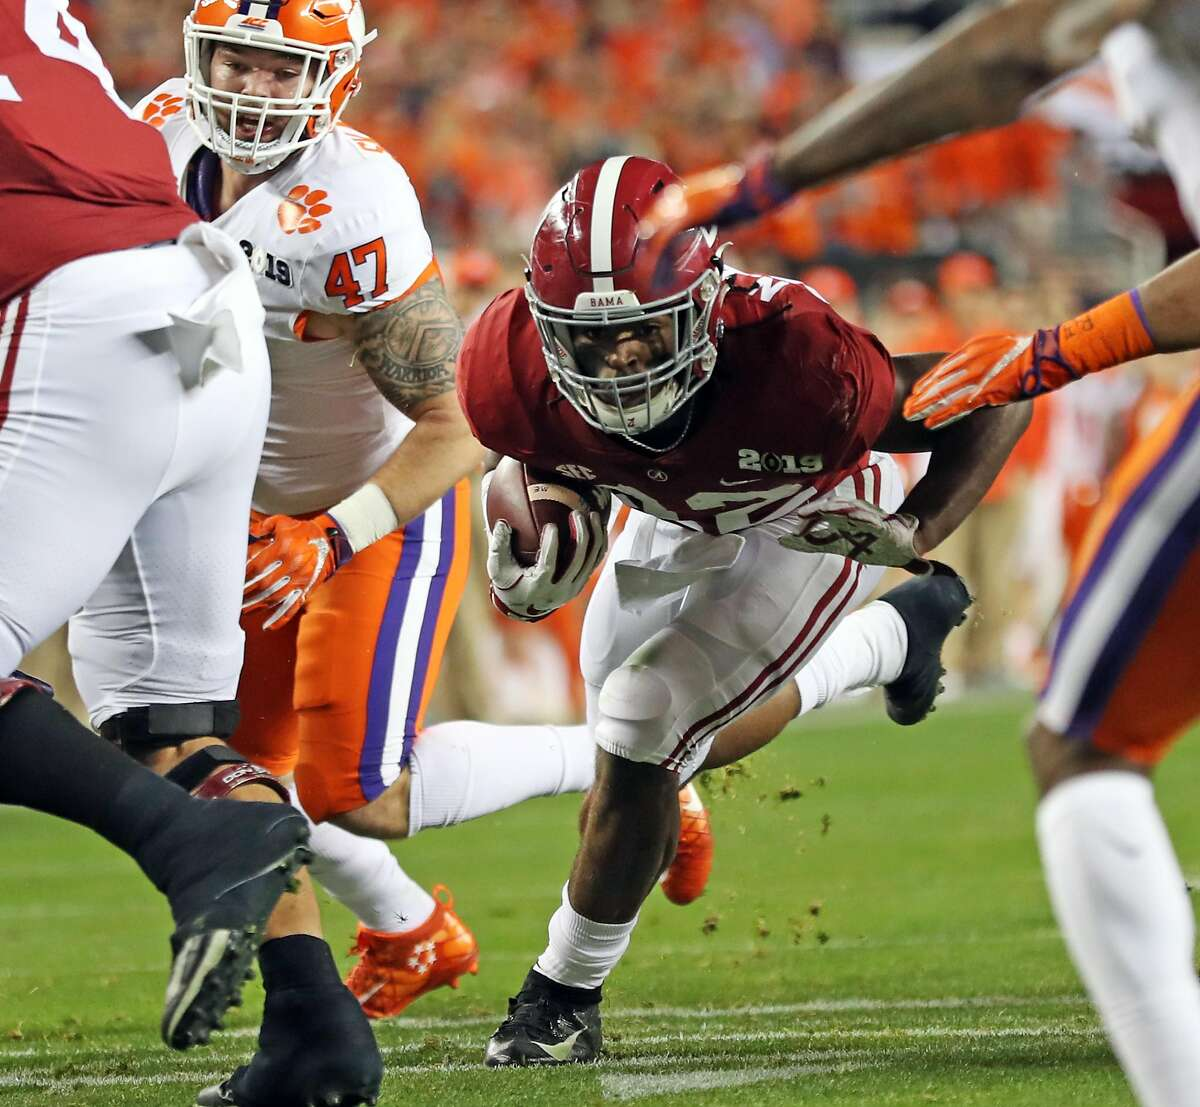 Alabama's Najee Harris rushes for a first down in 2nd quarter against Clemson during College Football Playoff championship game at Levi's Stadium in Santa Clara, Calif. on Monday, January 7, 2019.